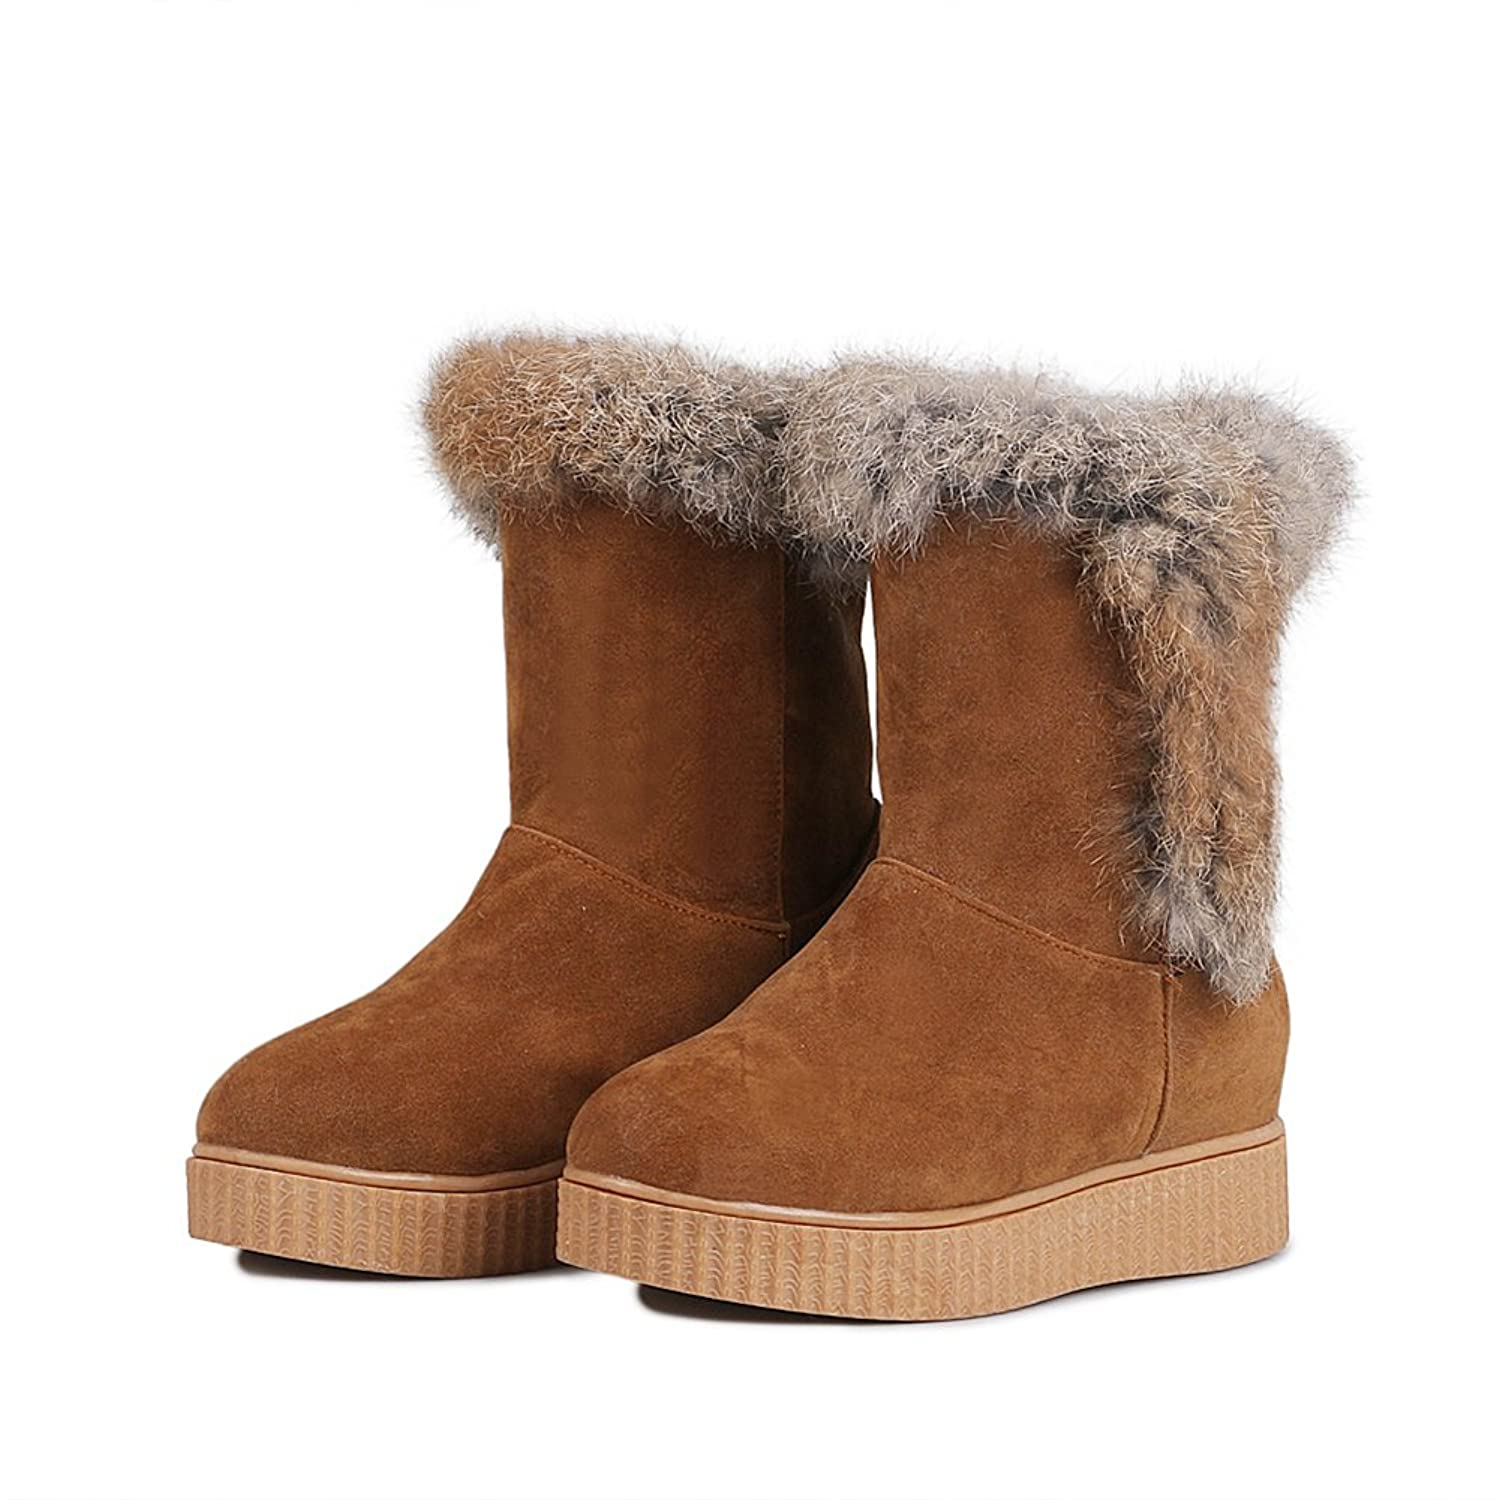 Manyuea Women Round Toe Pull on Flat Shoes Warm Fur Lined Ankle Snow Boot